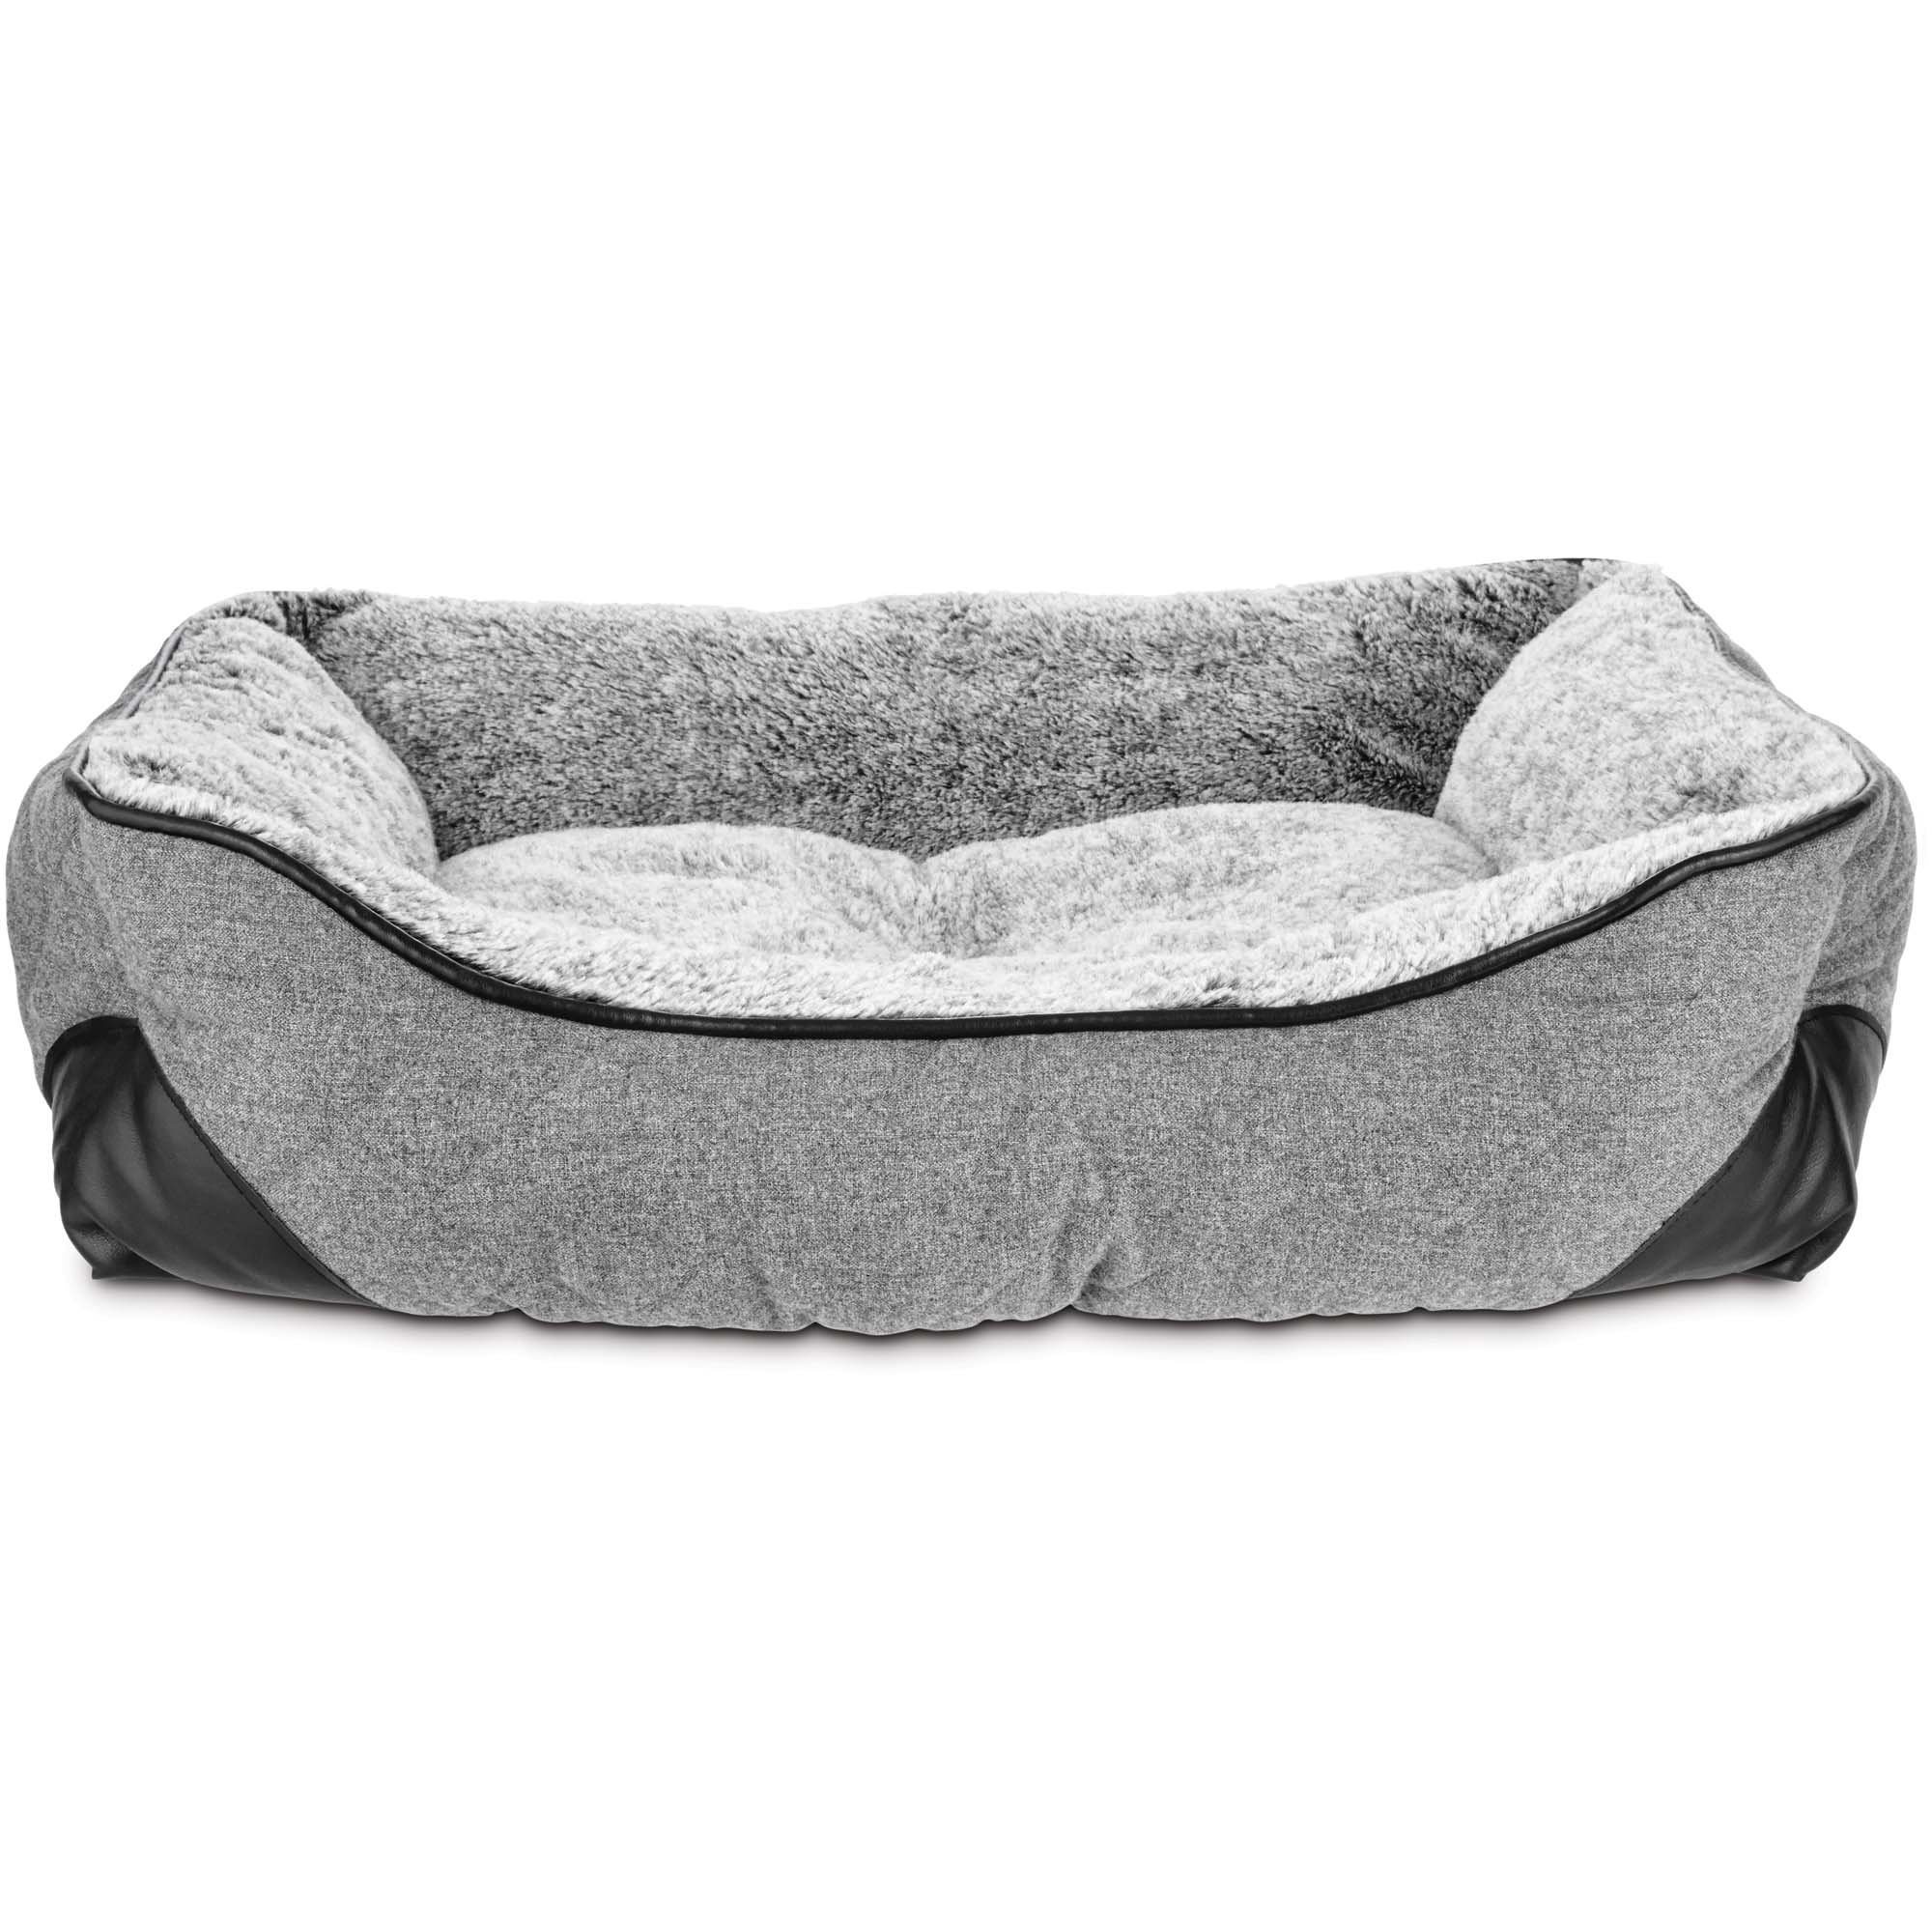 Dog Beds & Bedding Best & Small Dog Beds on Sale